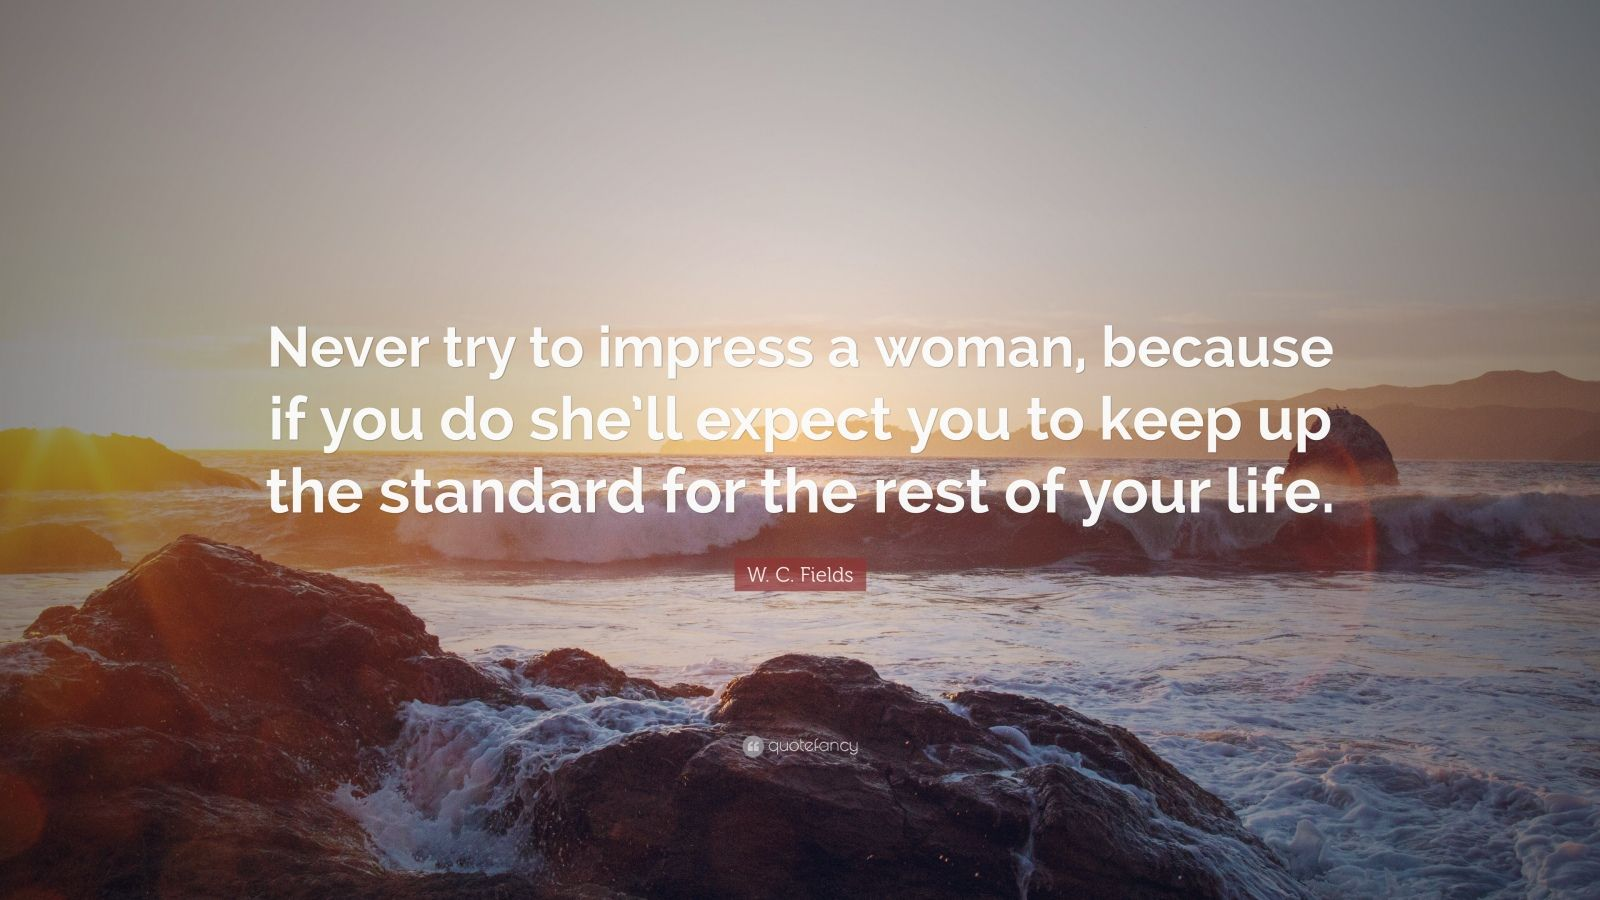 """W. C. Fields Quote: """"Never try to impress a woman, because if you do she'll expect you to keep up the standard for the rest of your life."""""""